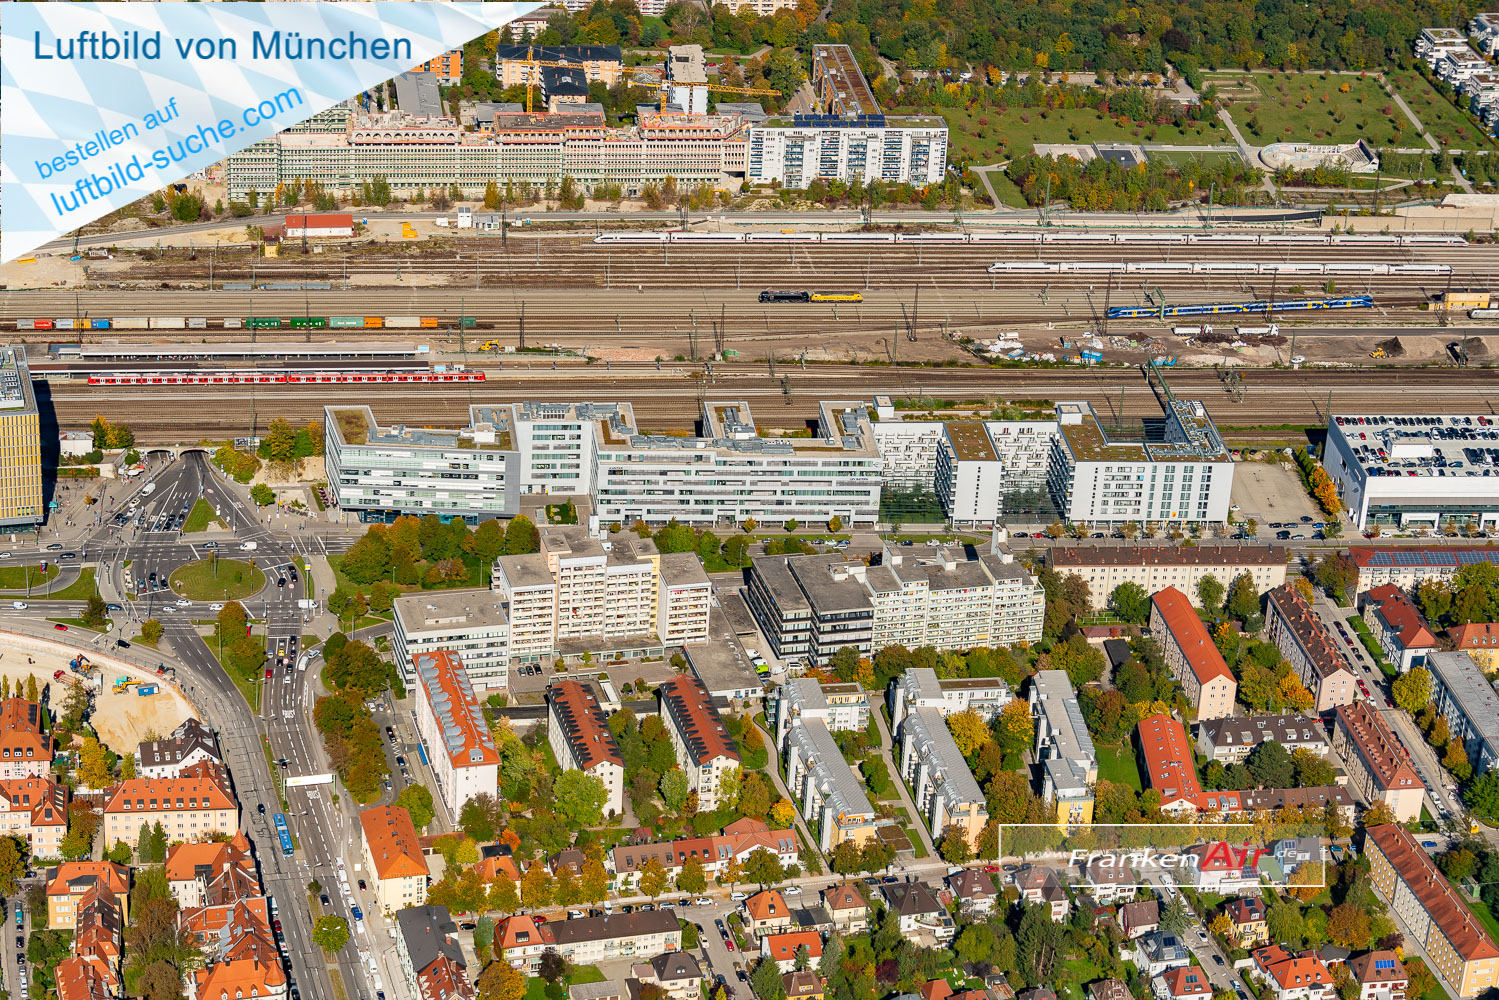 Laim-muenchen-18-978